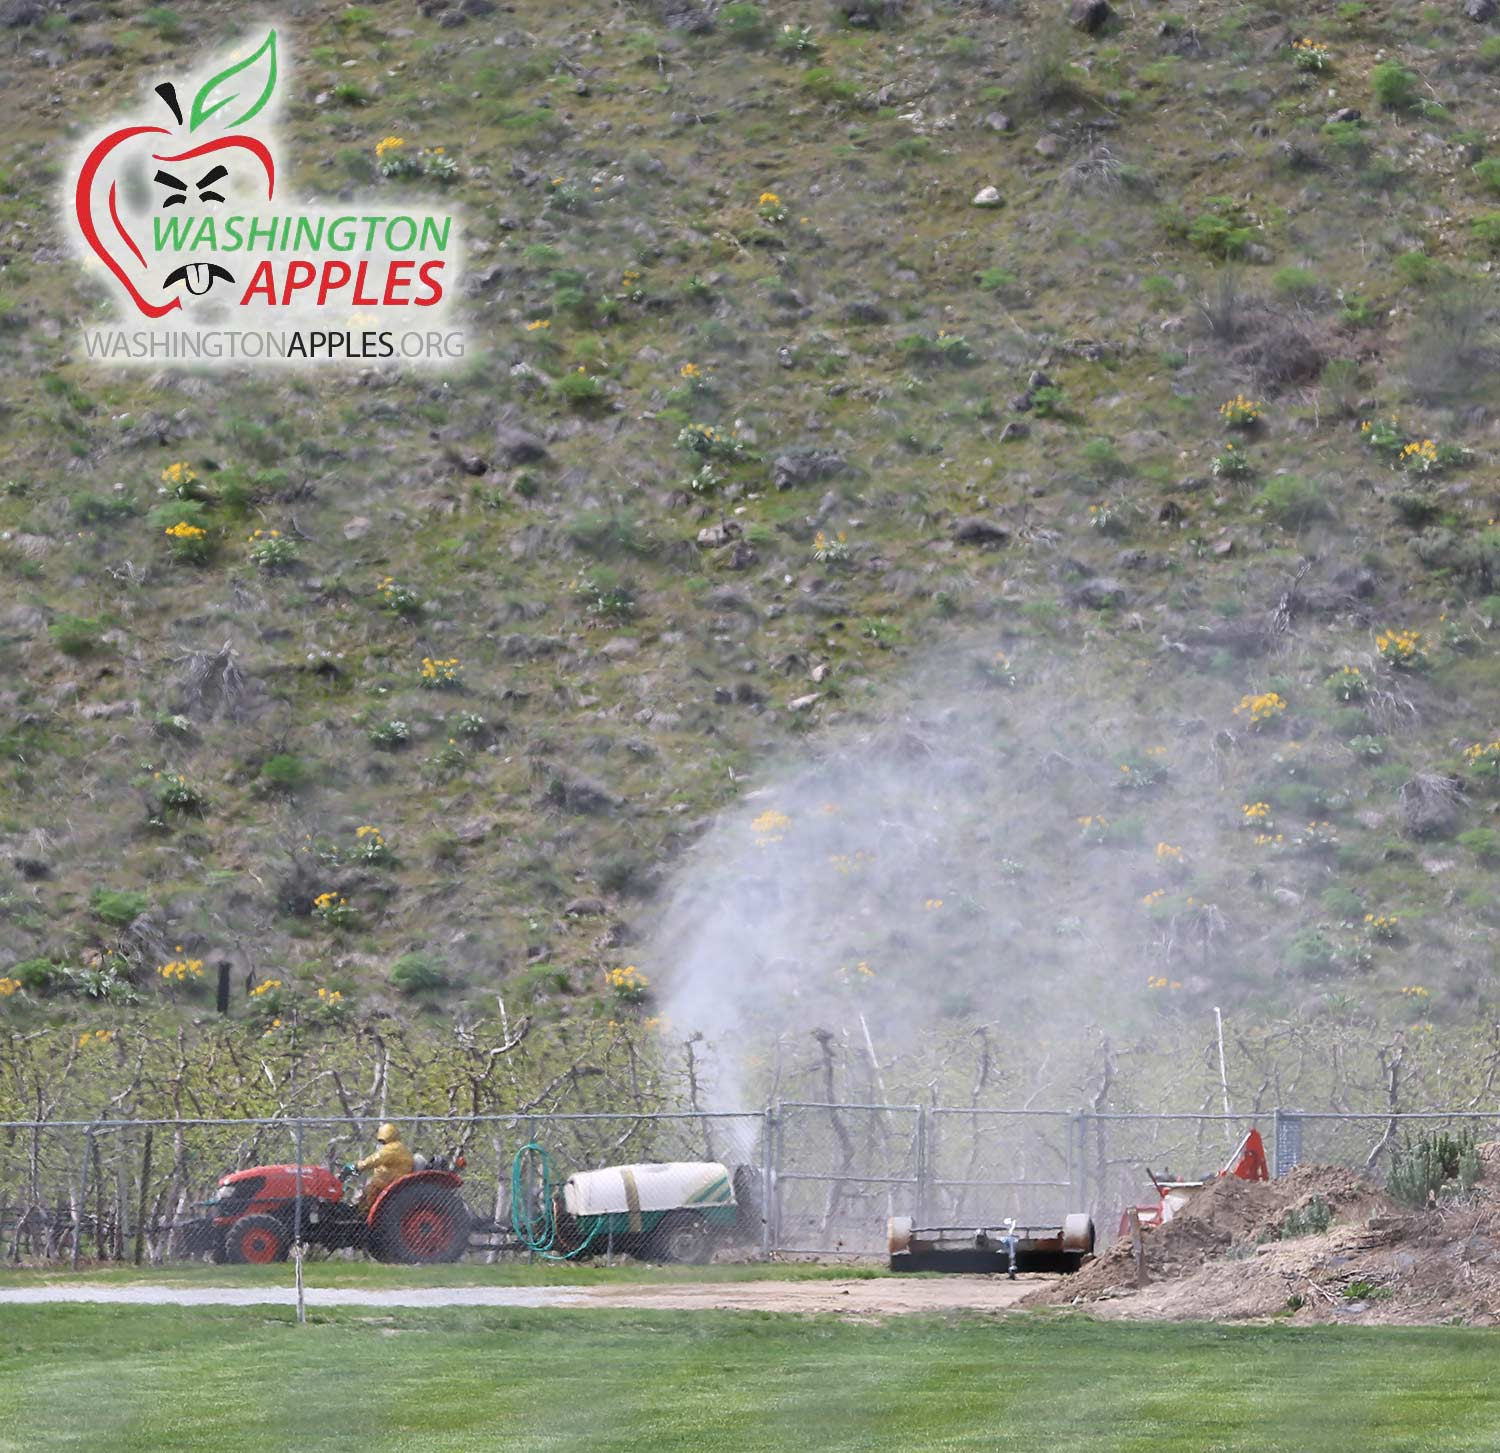 spraying_apples_pesticide_washington_apples